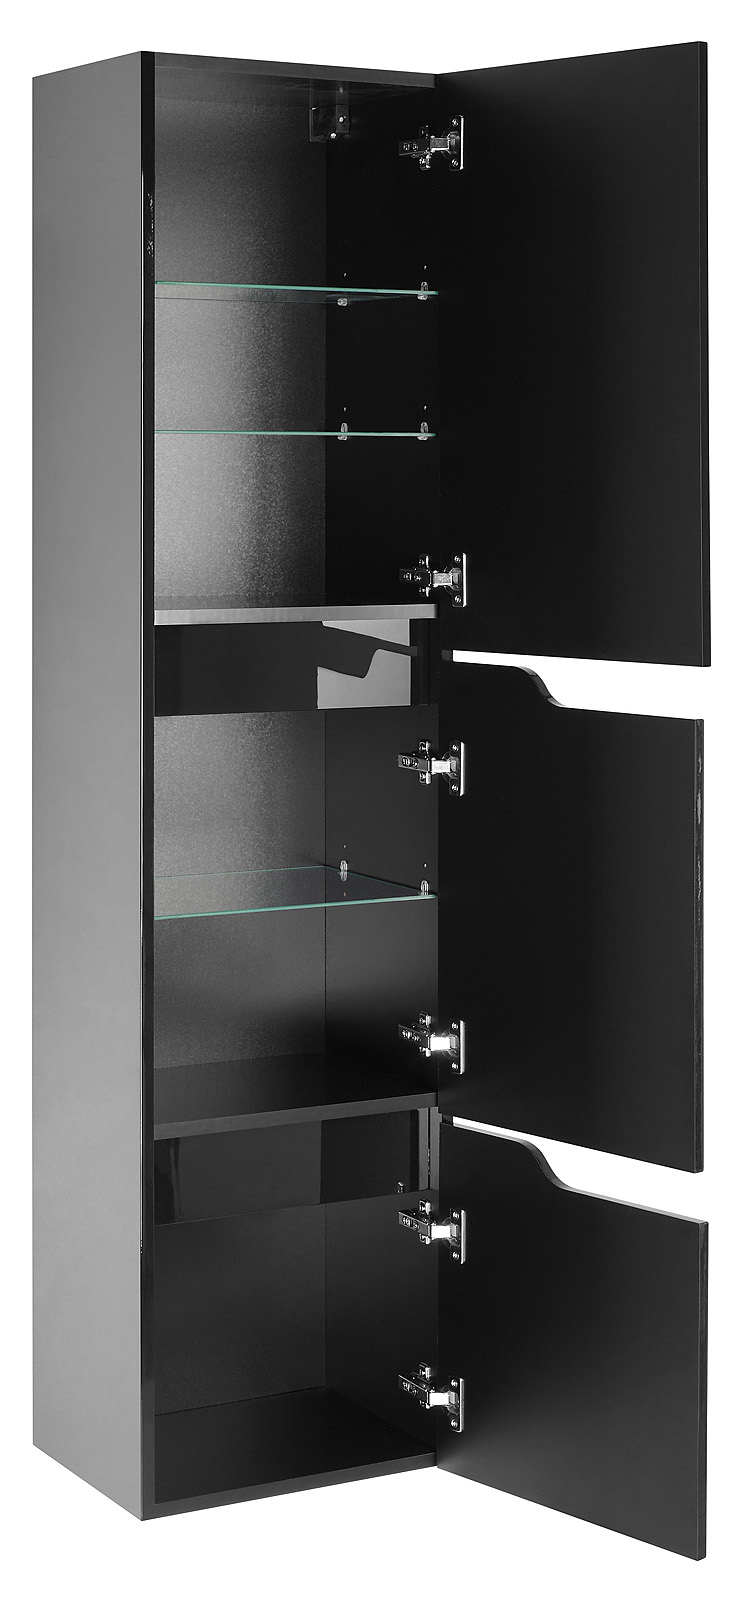 hochschrank lili badm bel badezimmerschrank bad schwarz. Black Bedroom Furniture Sets. Home Design Ideas